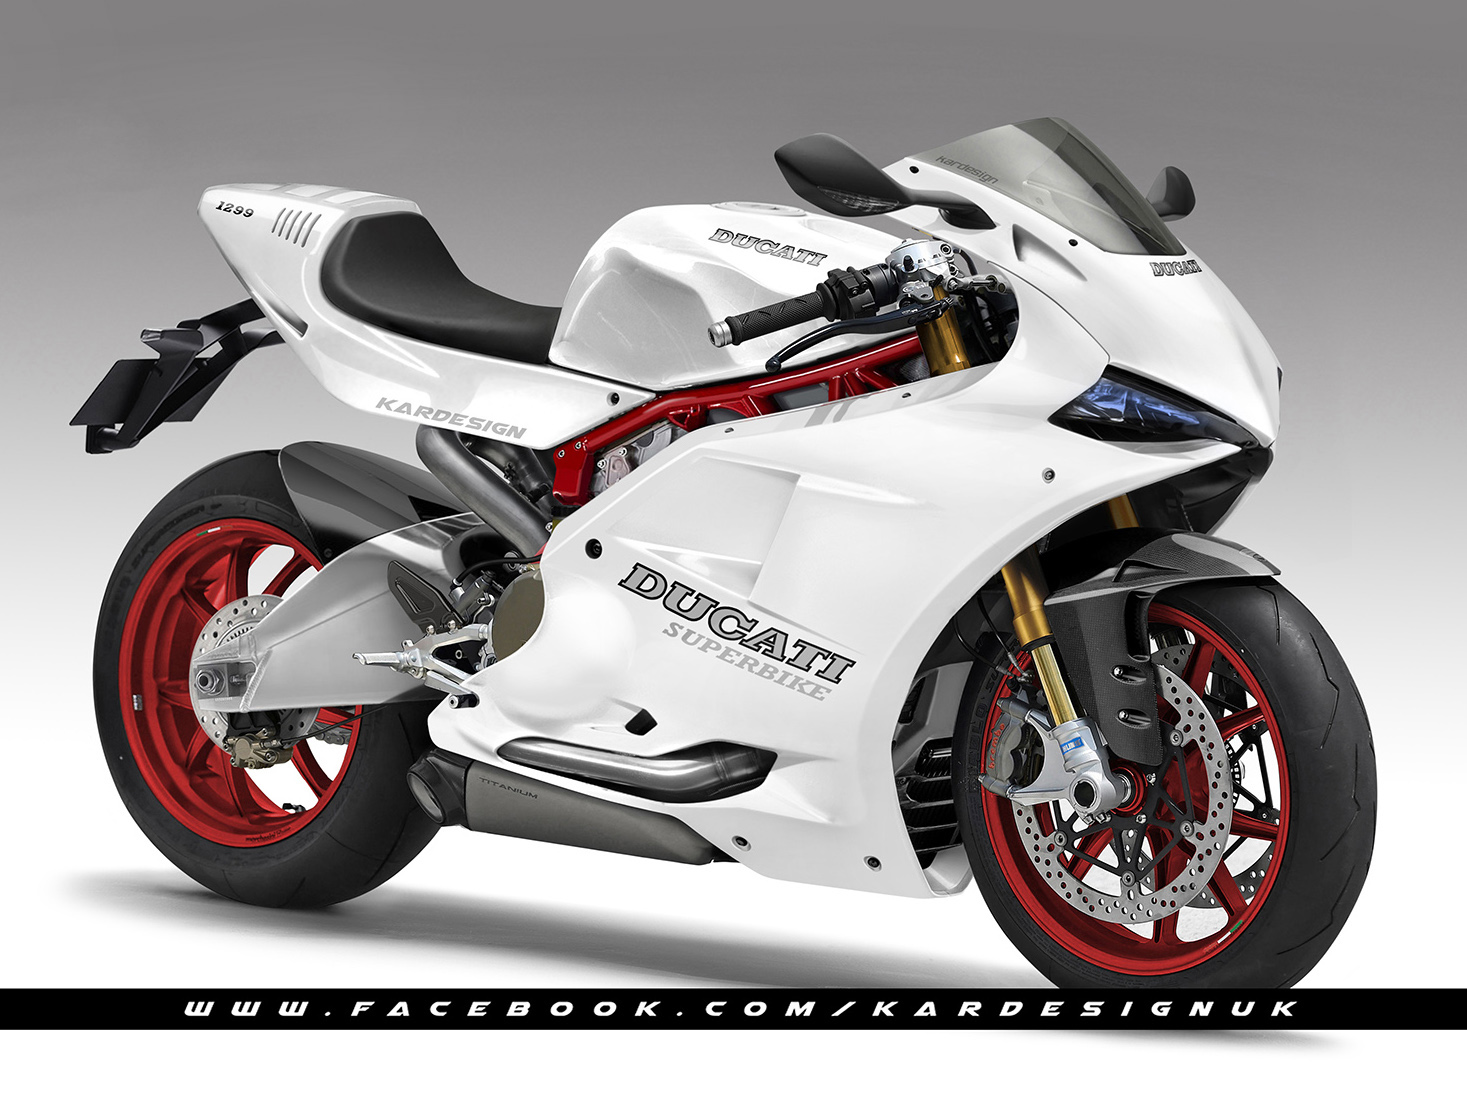 The Ducati V4 Streetfighter is coming – video – Kardesign Koncepts